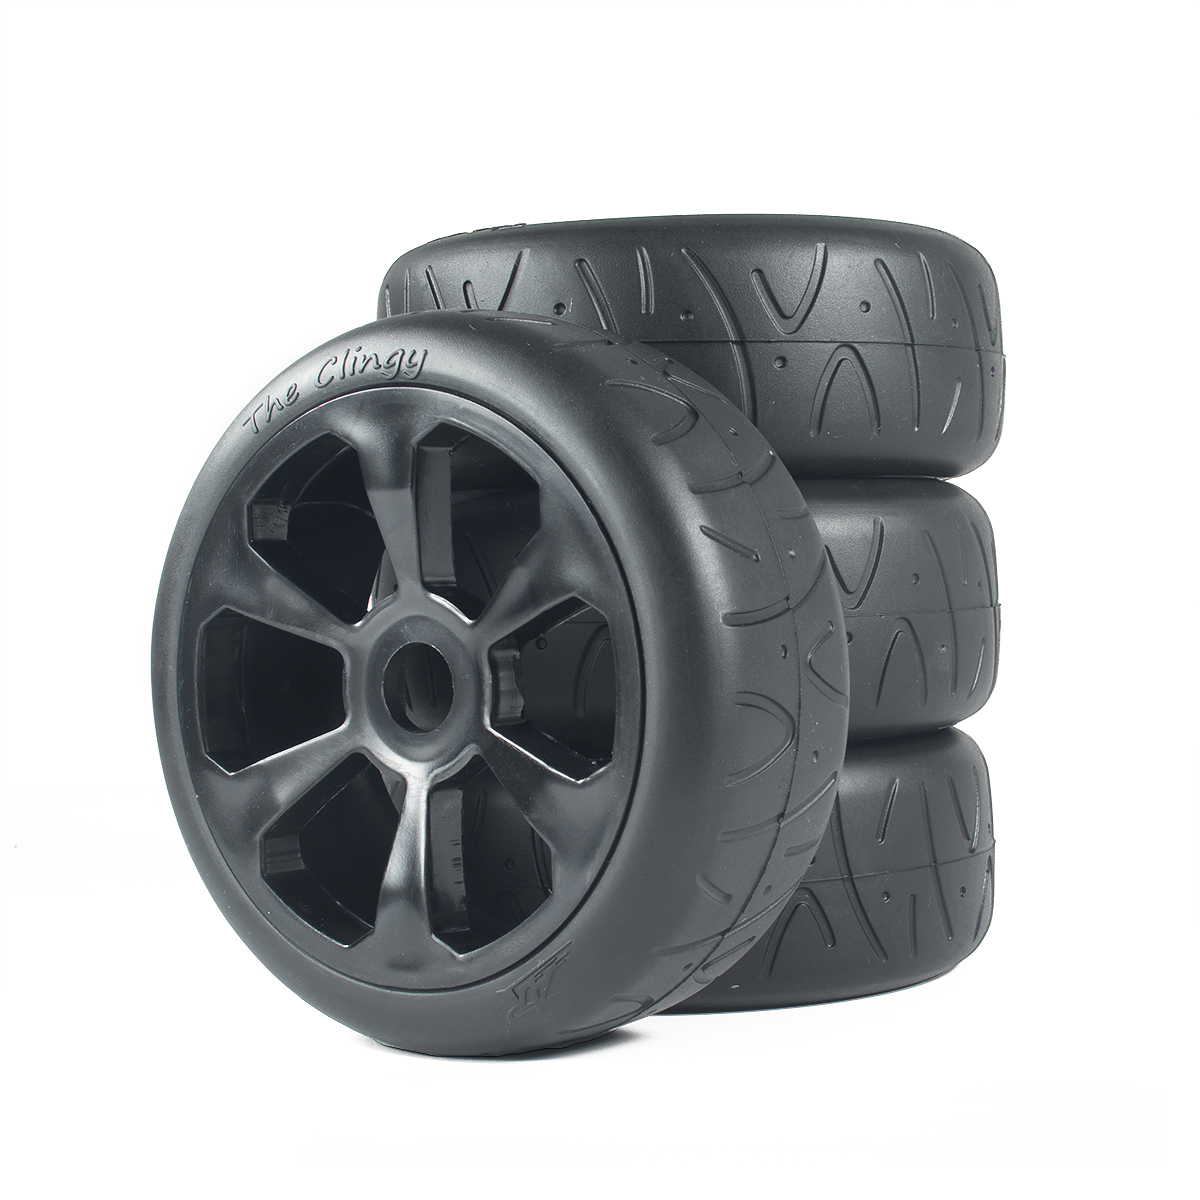 4Pcs RC 1/8 Scale On Road Hot Melt Rubber Tire & Wheel Rim Set 17mm Hex Wheels for 1:8 Hobao HSP HPI Kyosho RC Car Parts